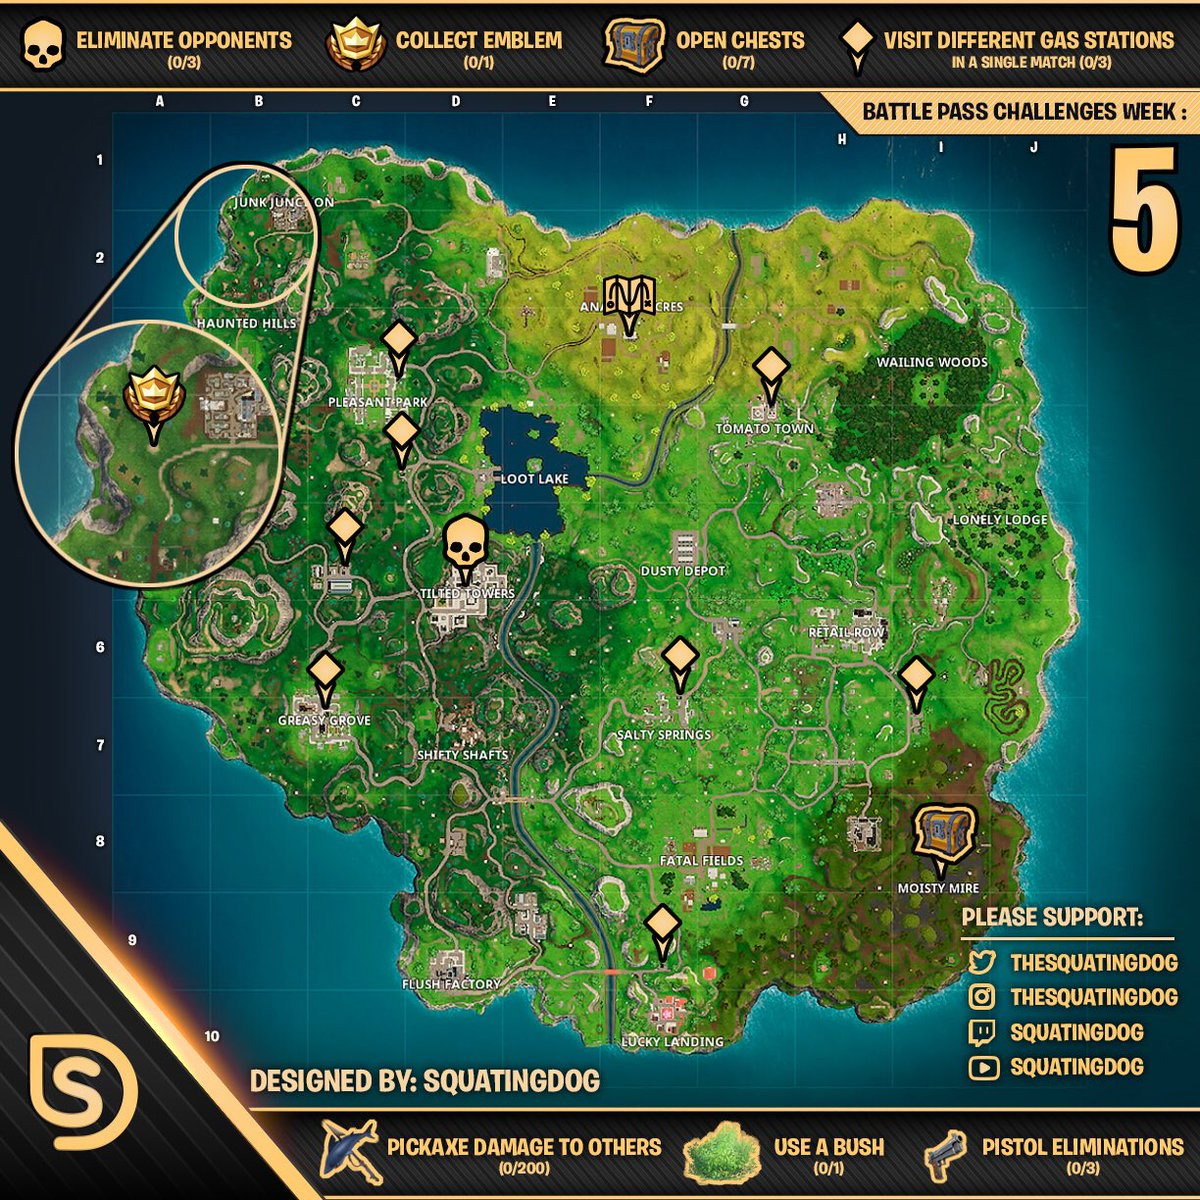 Week 5 Challenges All inclusive cheat sheet